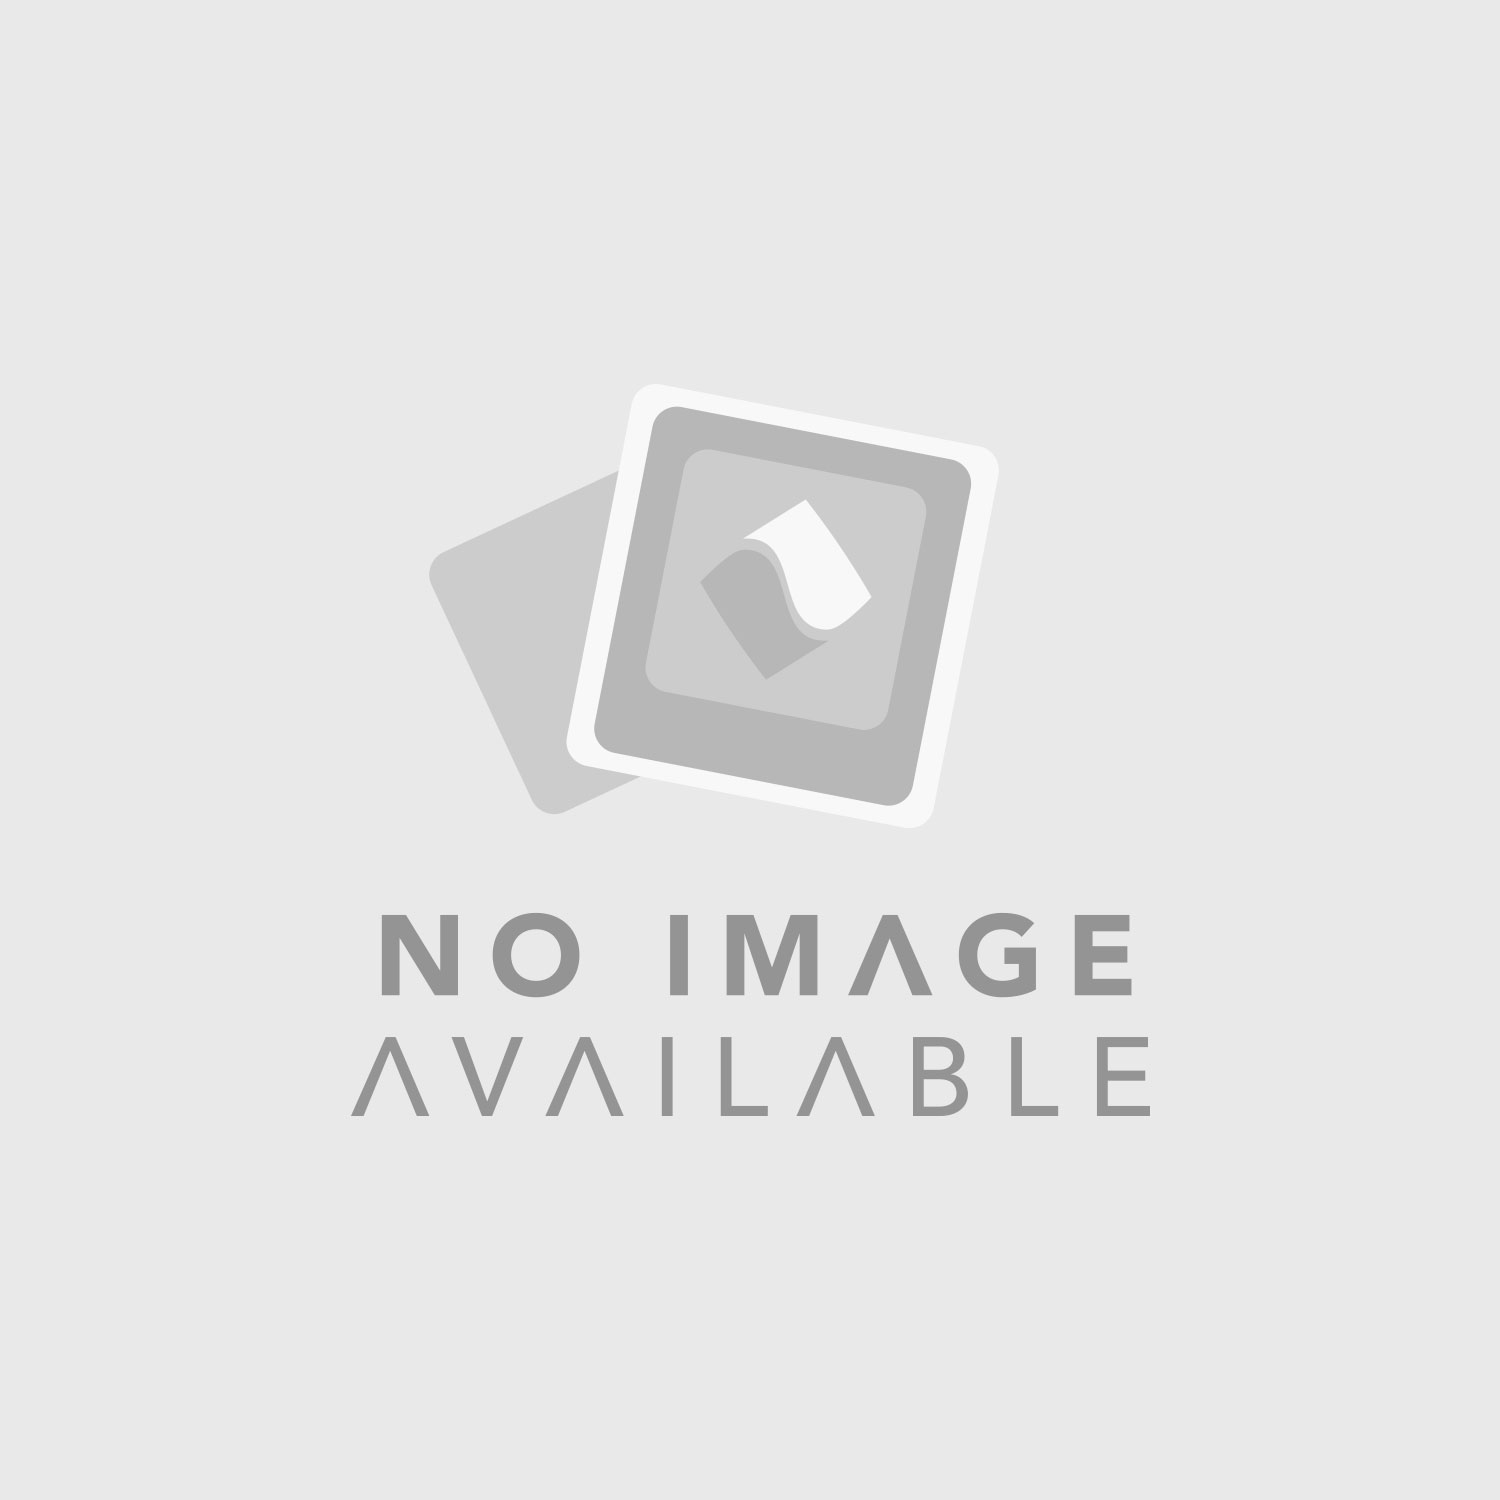 "Yamaha SM12V 350-Watt Two-Way Passive Floor Monitor with 12"" Woofer (Single)"